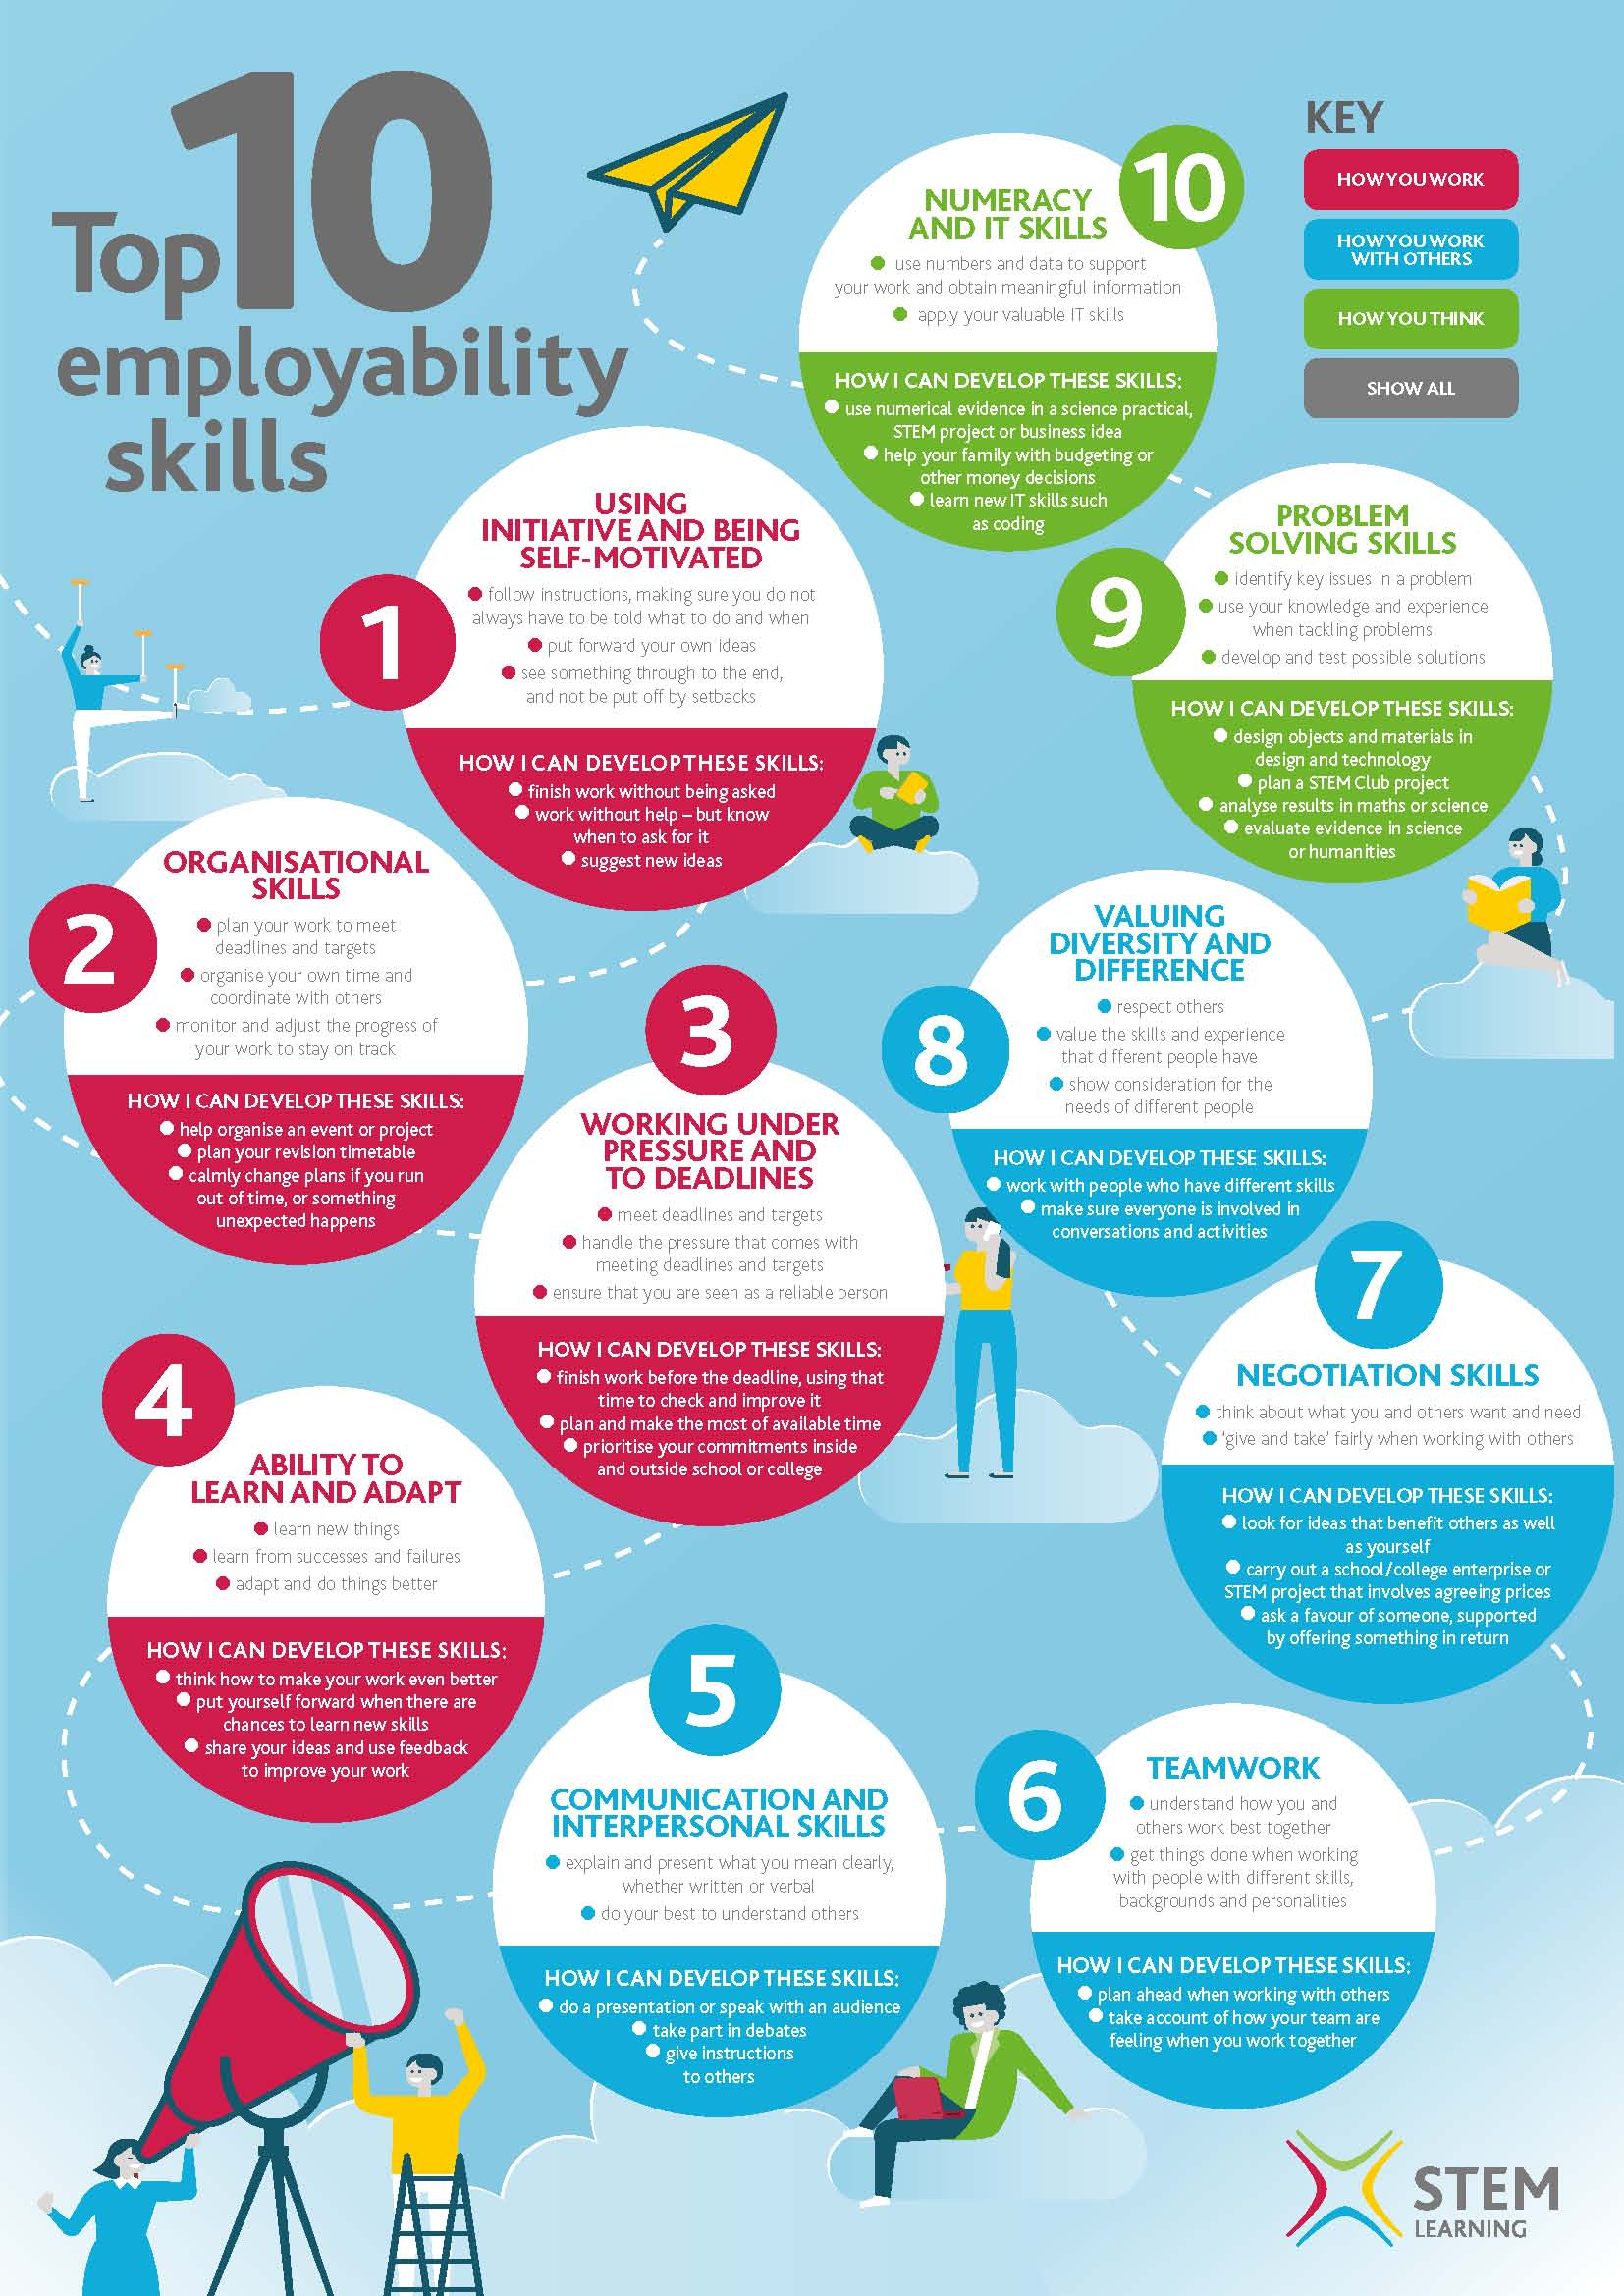 Click this image for a full size pdf to see what you can do to improve your employability skills